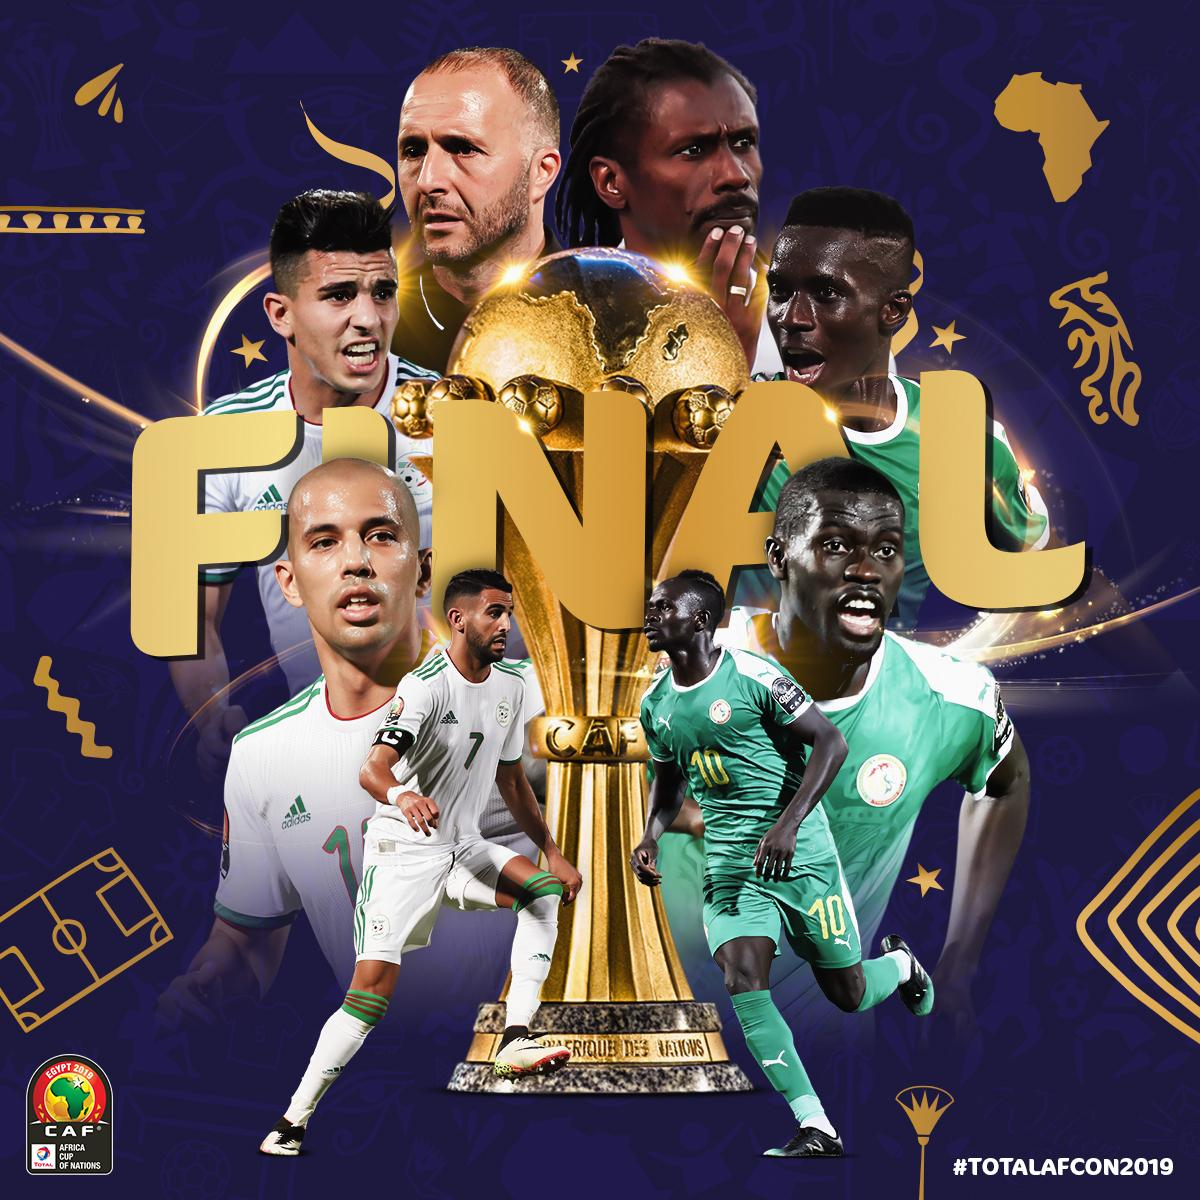 AFCON 2019 Champions: Senegal vs Algeria (0-1) Full Highlights & Goals, Algeria crowned champions of Africa for the second time & Closing Ceremony